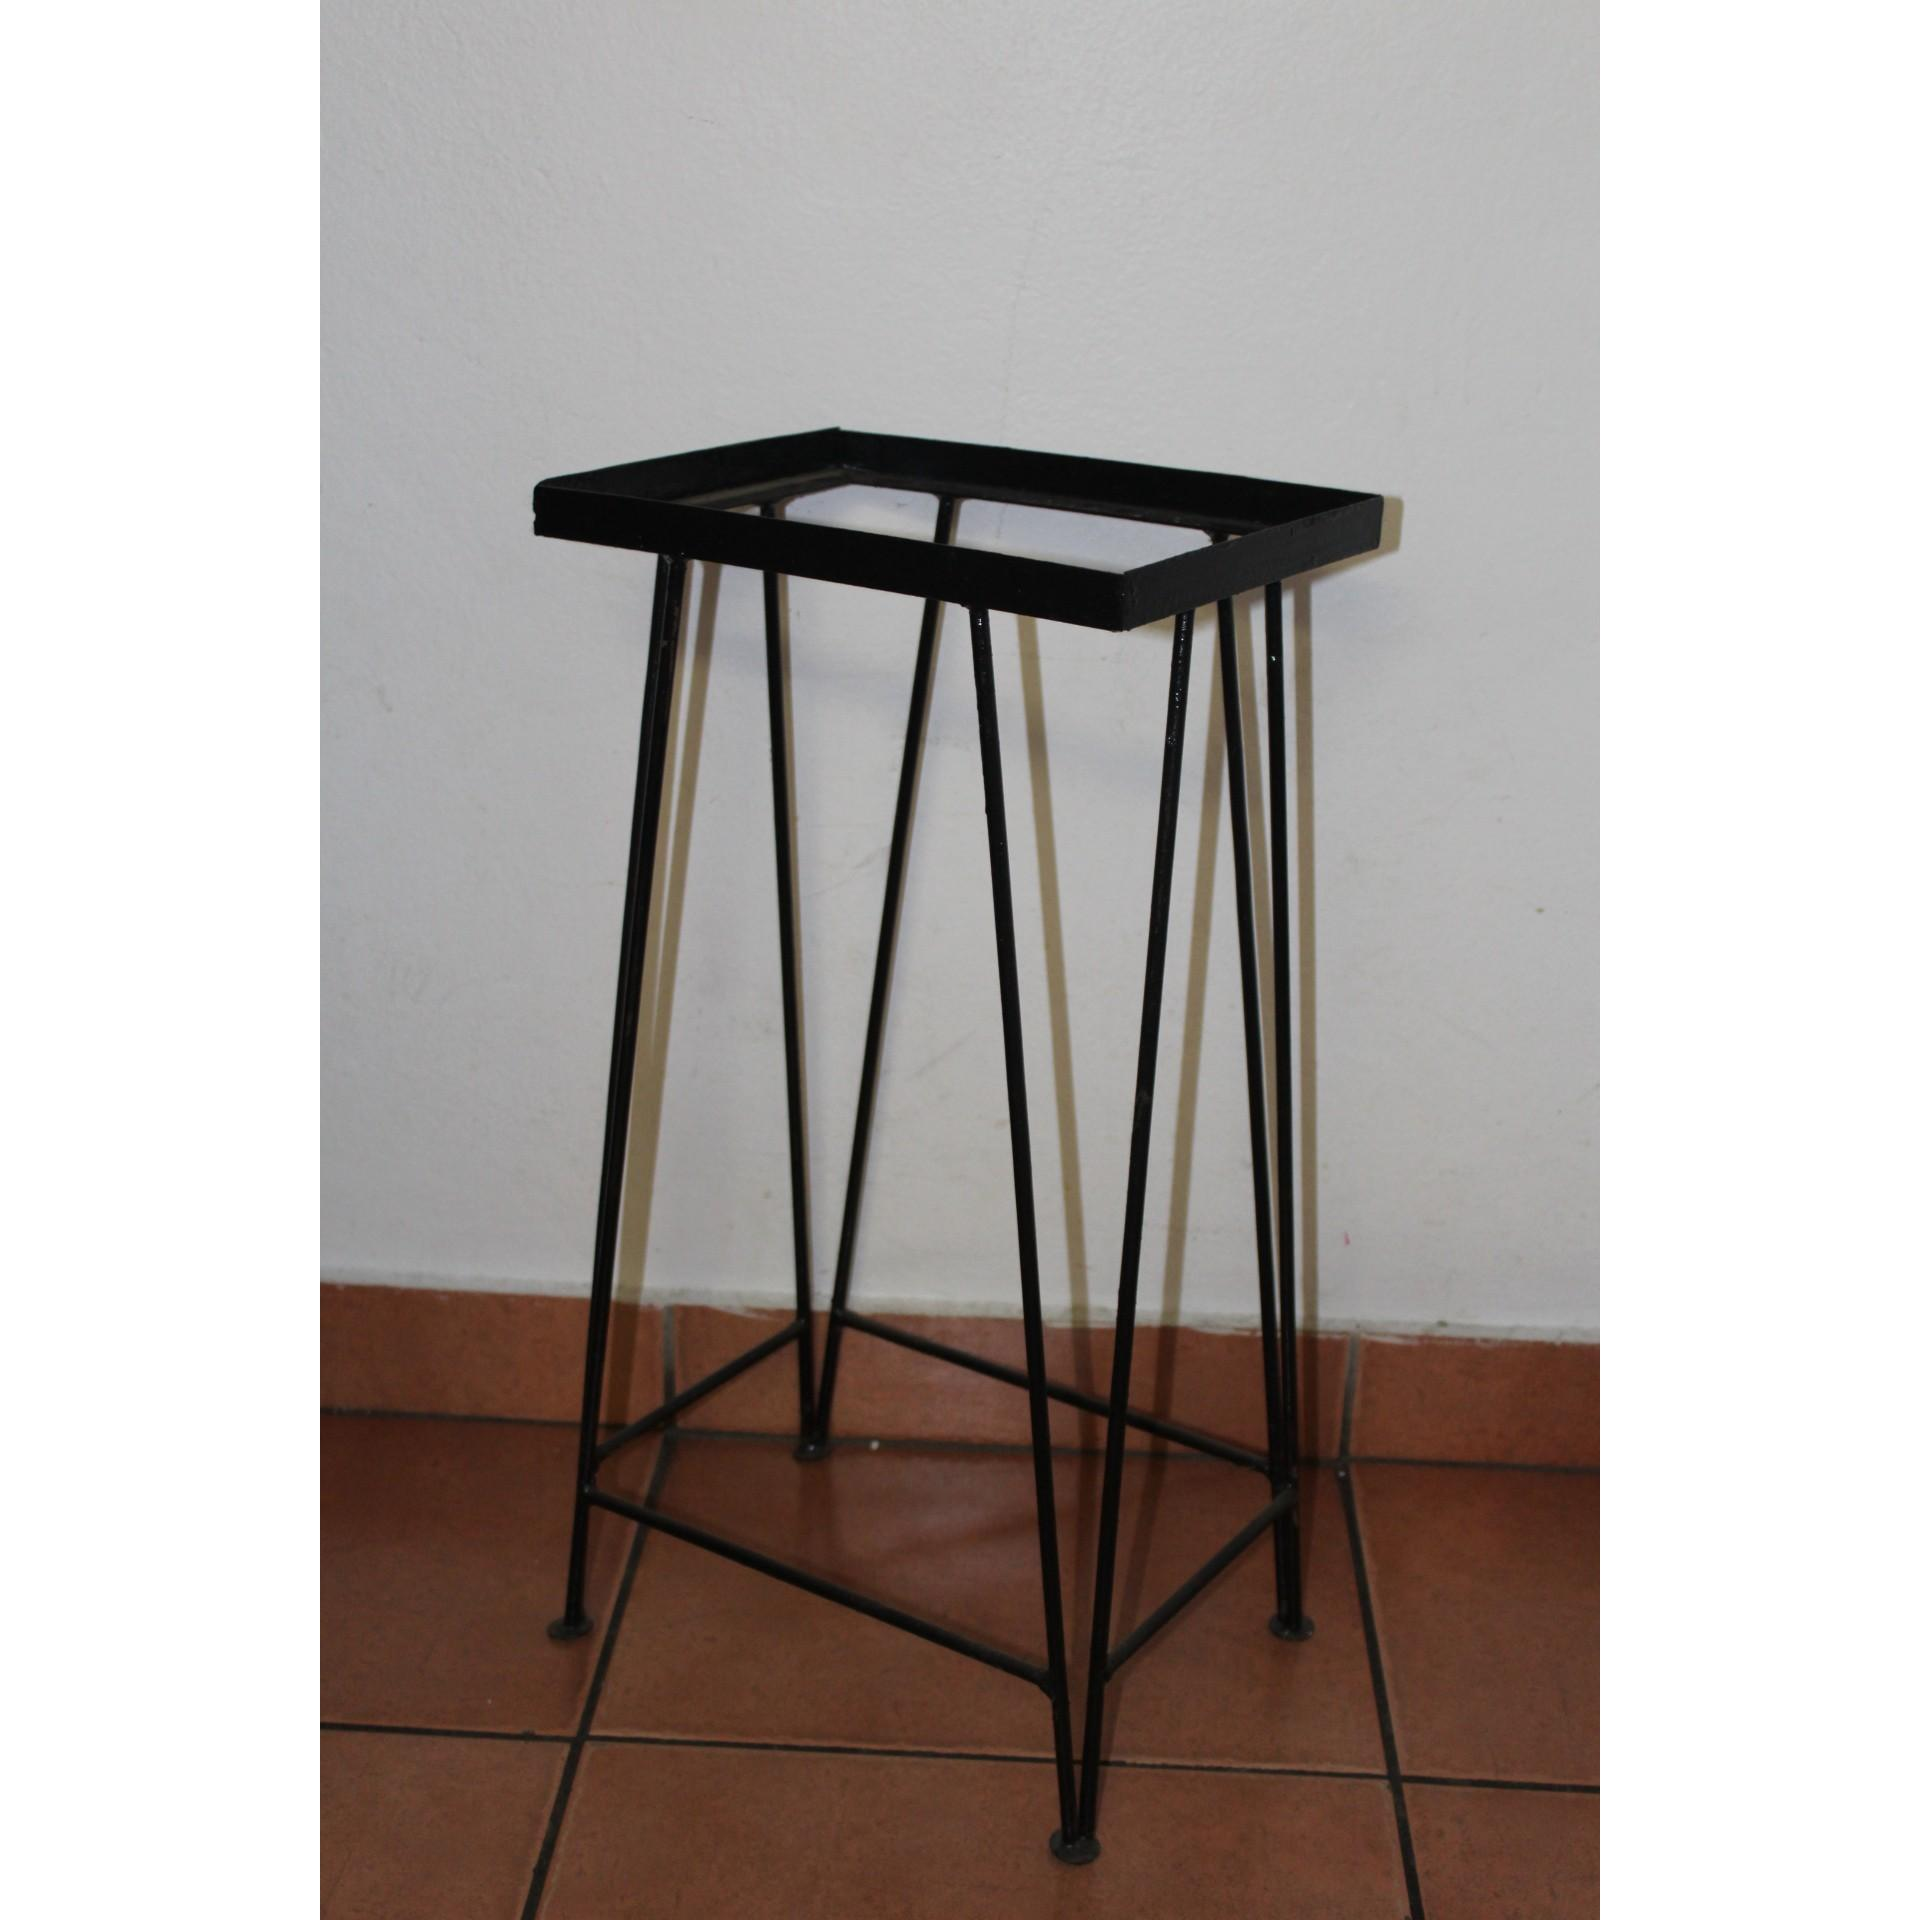 1FT STAND (12) - (300 X 225 X 600)